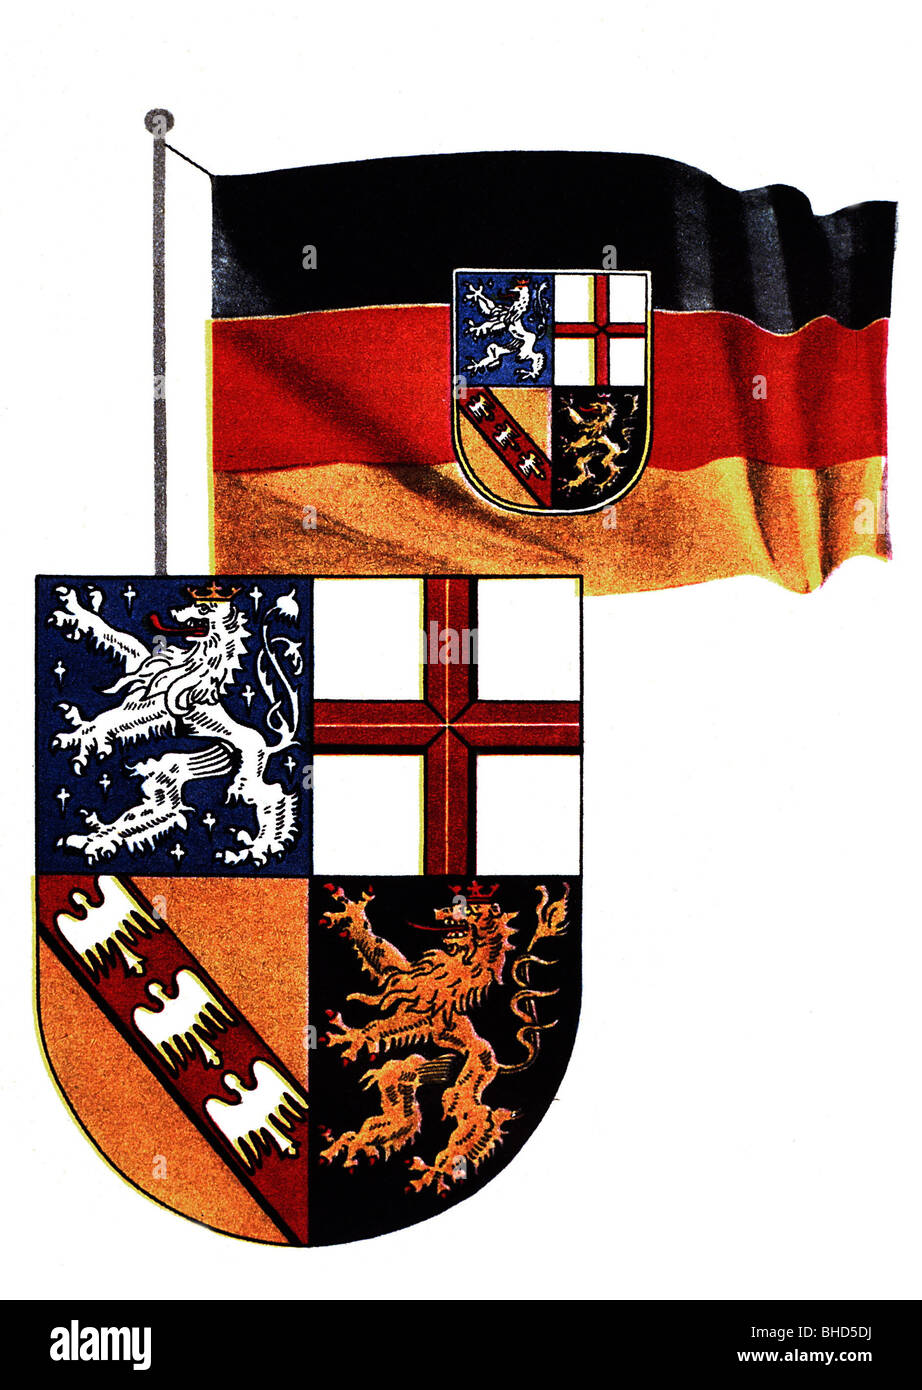 coat of arms, Germany, Saarland, flag and coat of arms since 1956, FRG, heraldry, lion, cross, former coat of arms - Stock Image